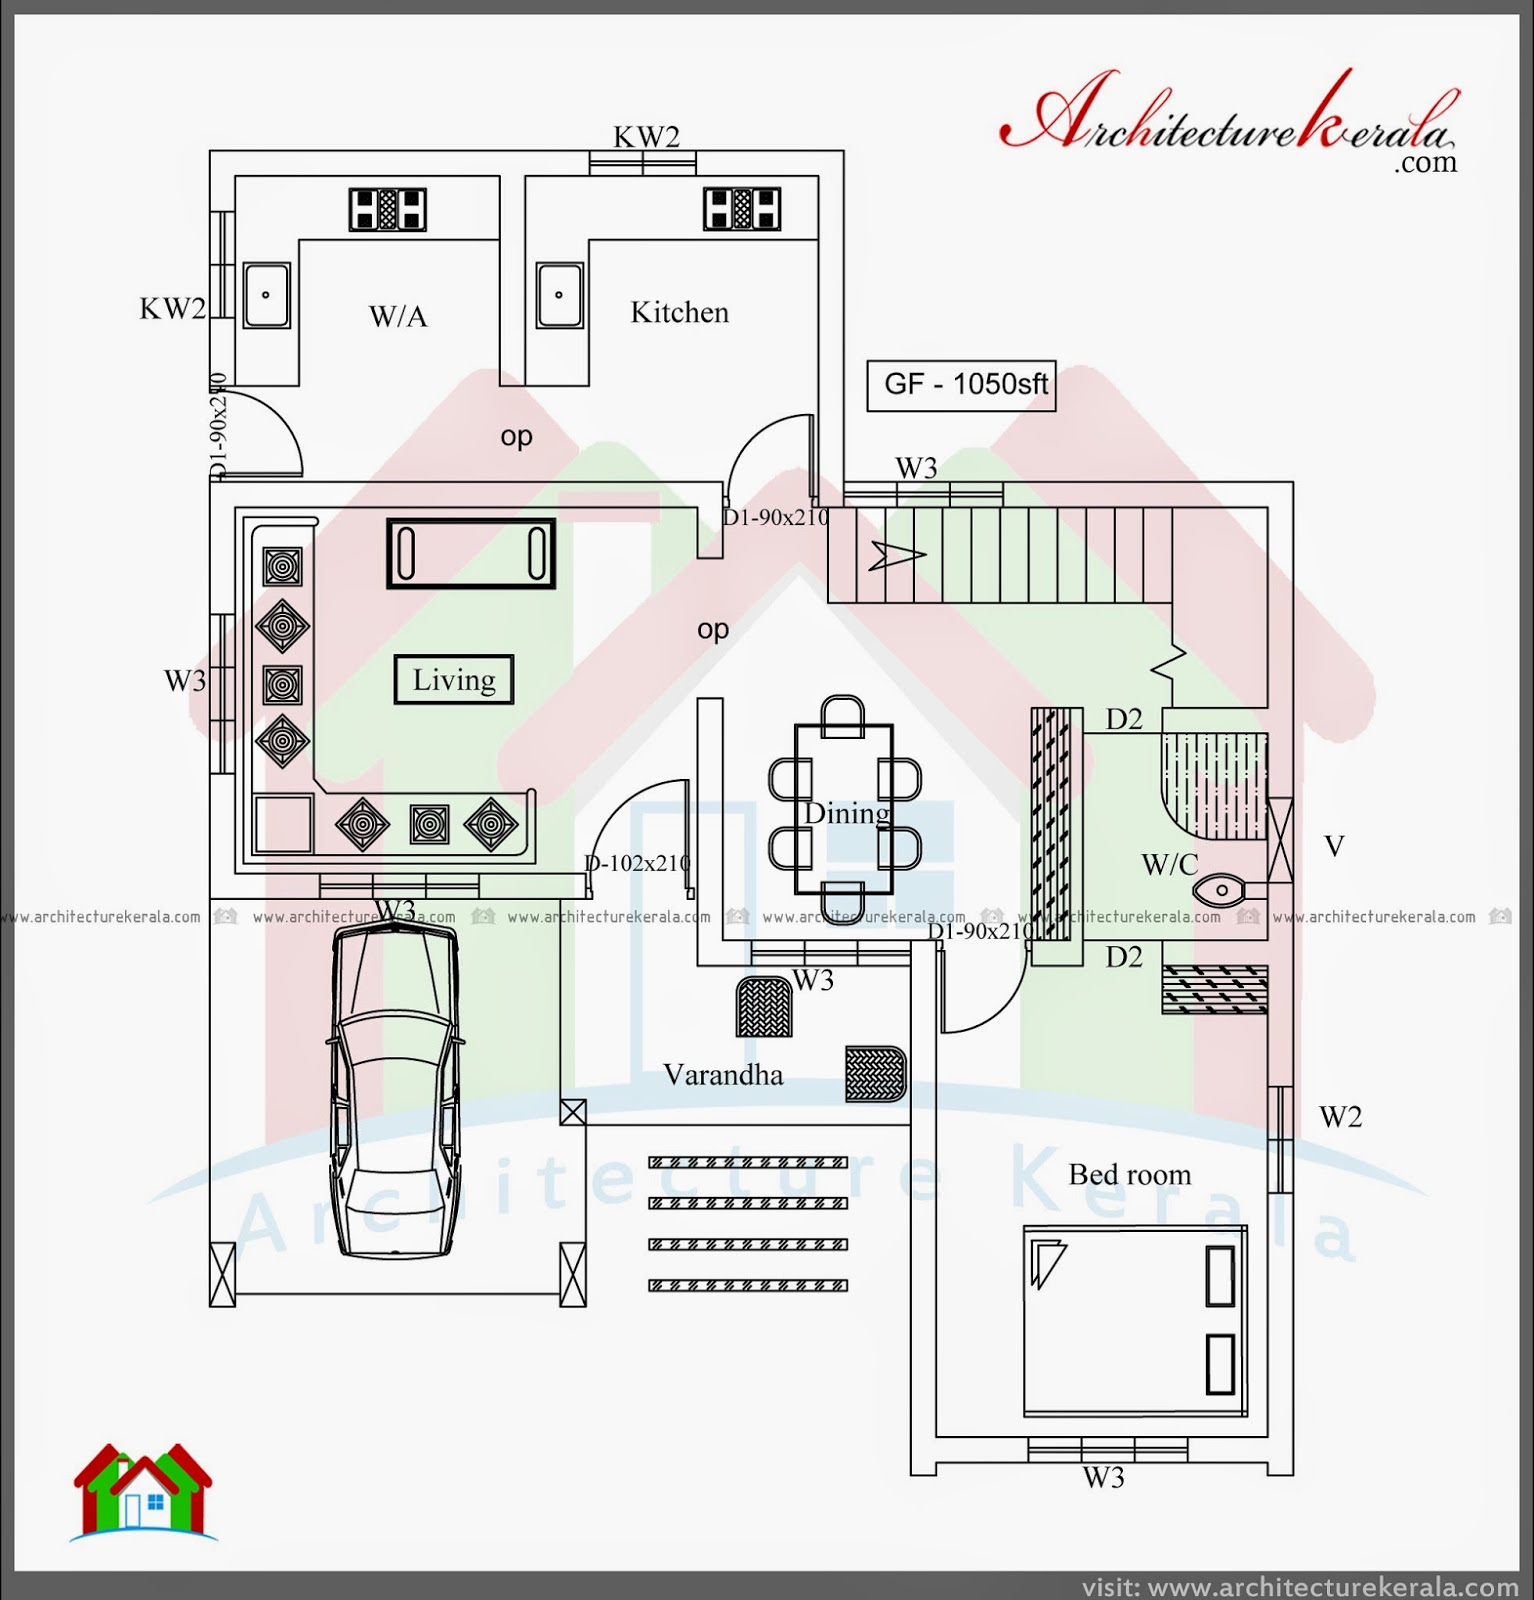 Three bedroom two storey house plan architecture kerala for Kerala house plan images